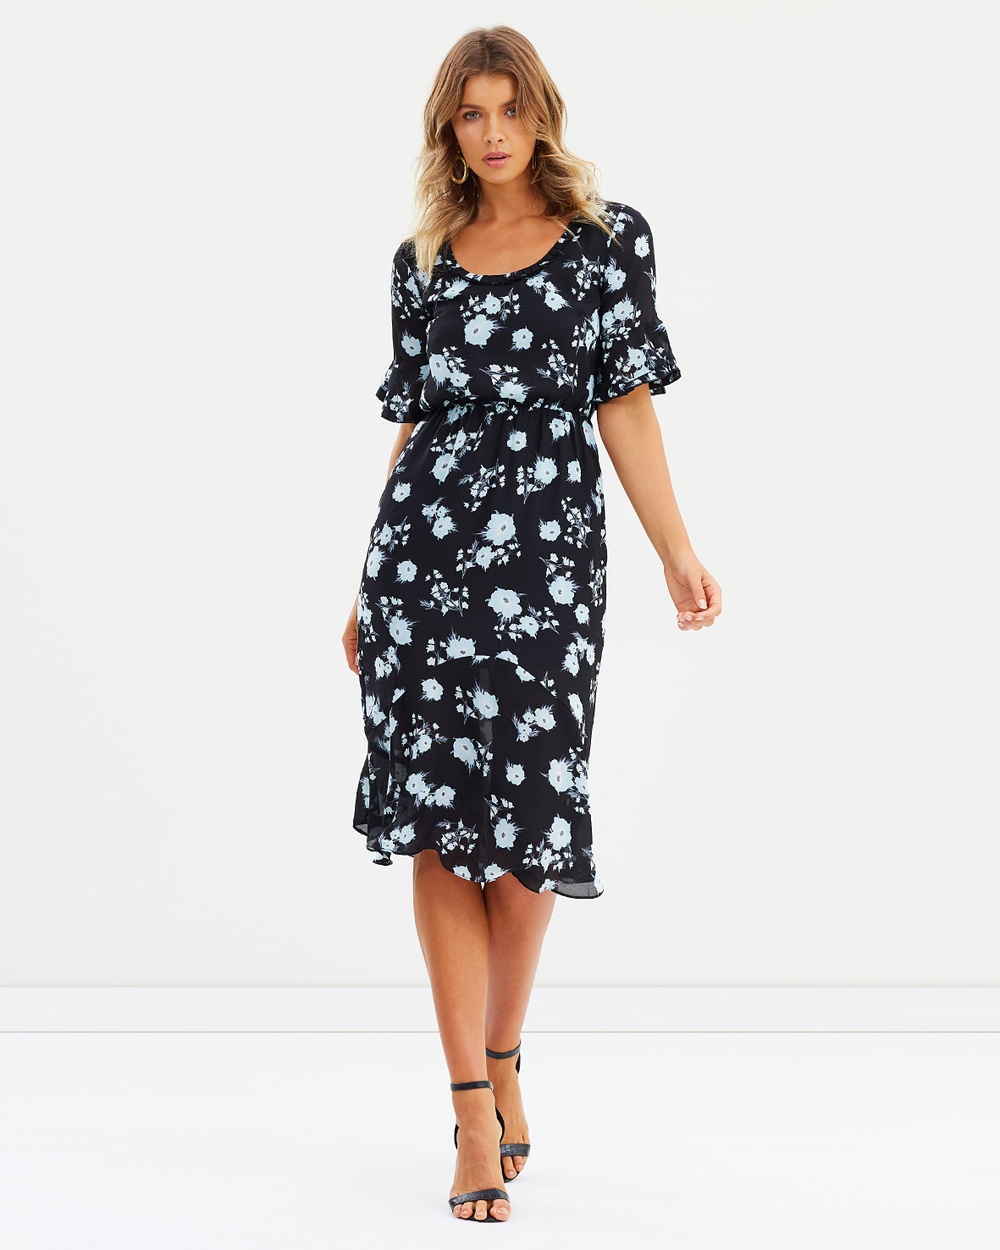 Atmos & Here ICONIC EXCLUSIVE Zaylee Fitted Maxi Dress Dresses Soft Washed Floral ICONIC EXCLUSIVE Zaylee Fitted Maxi Dress